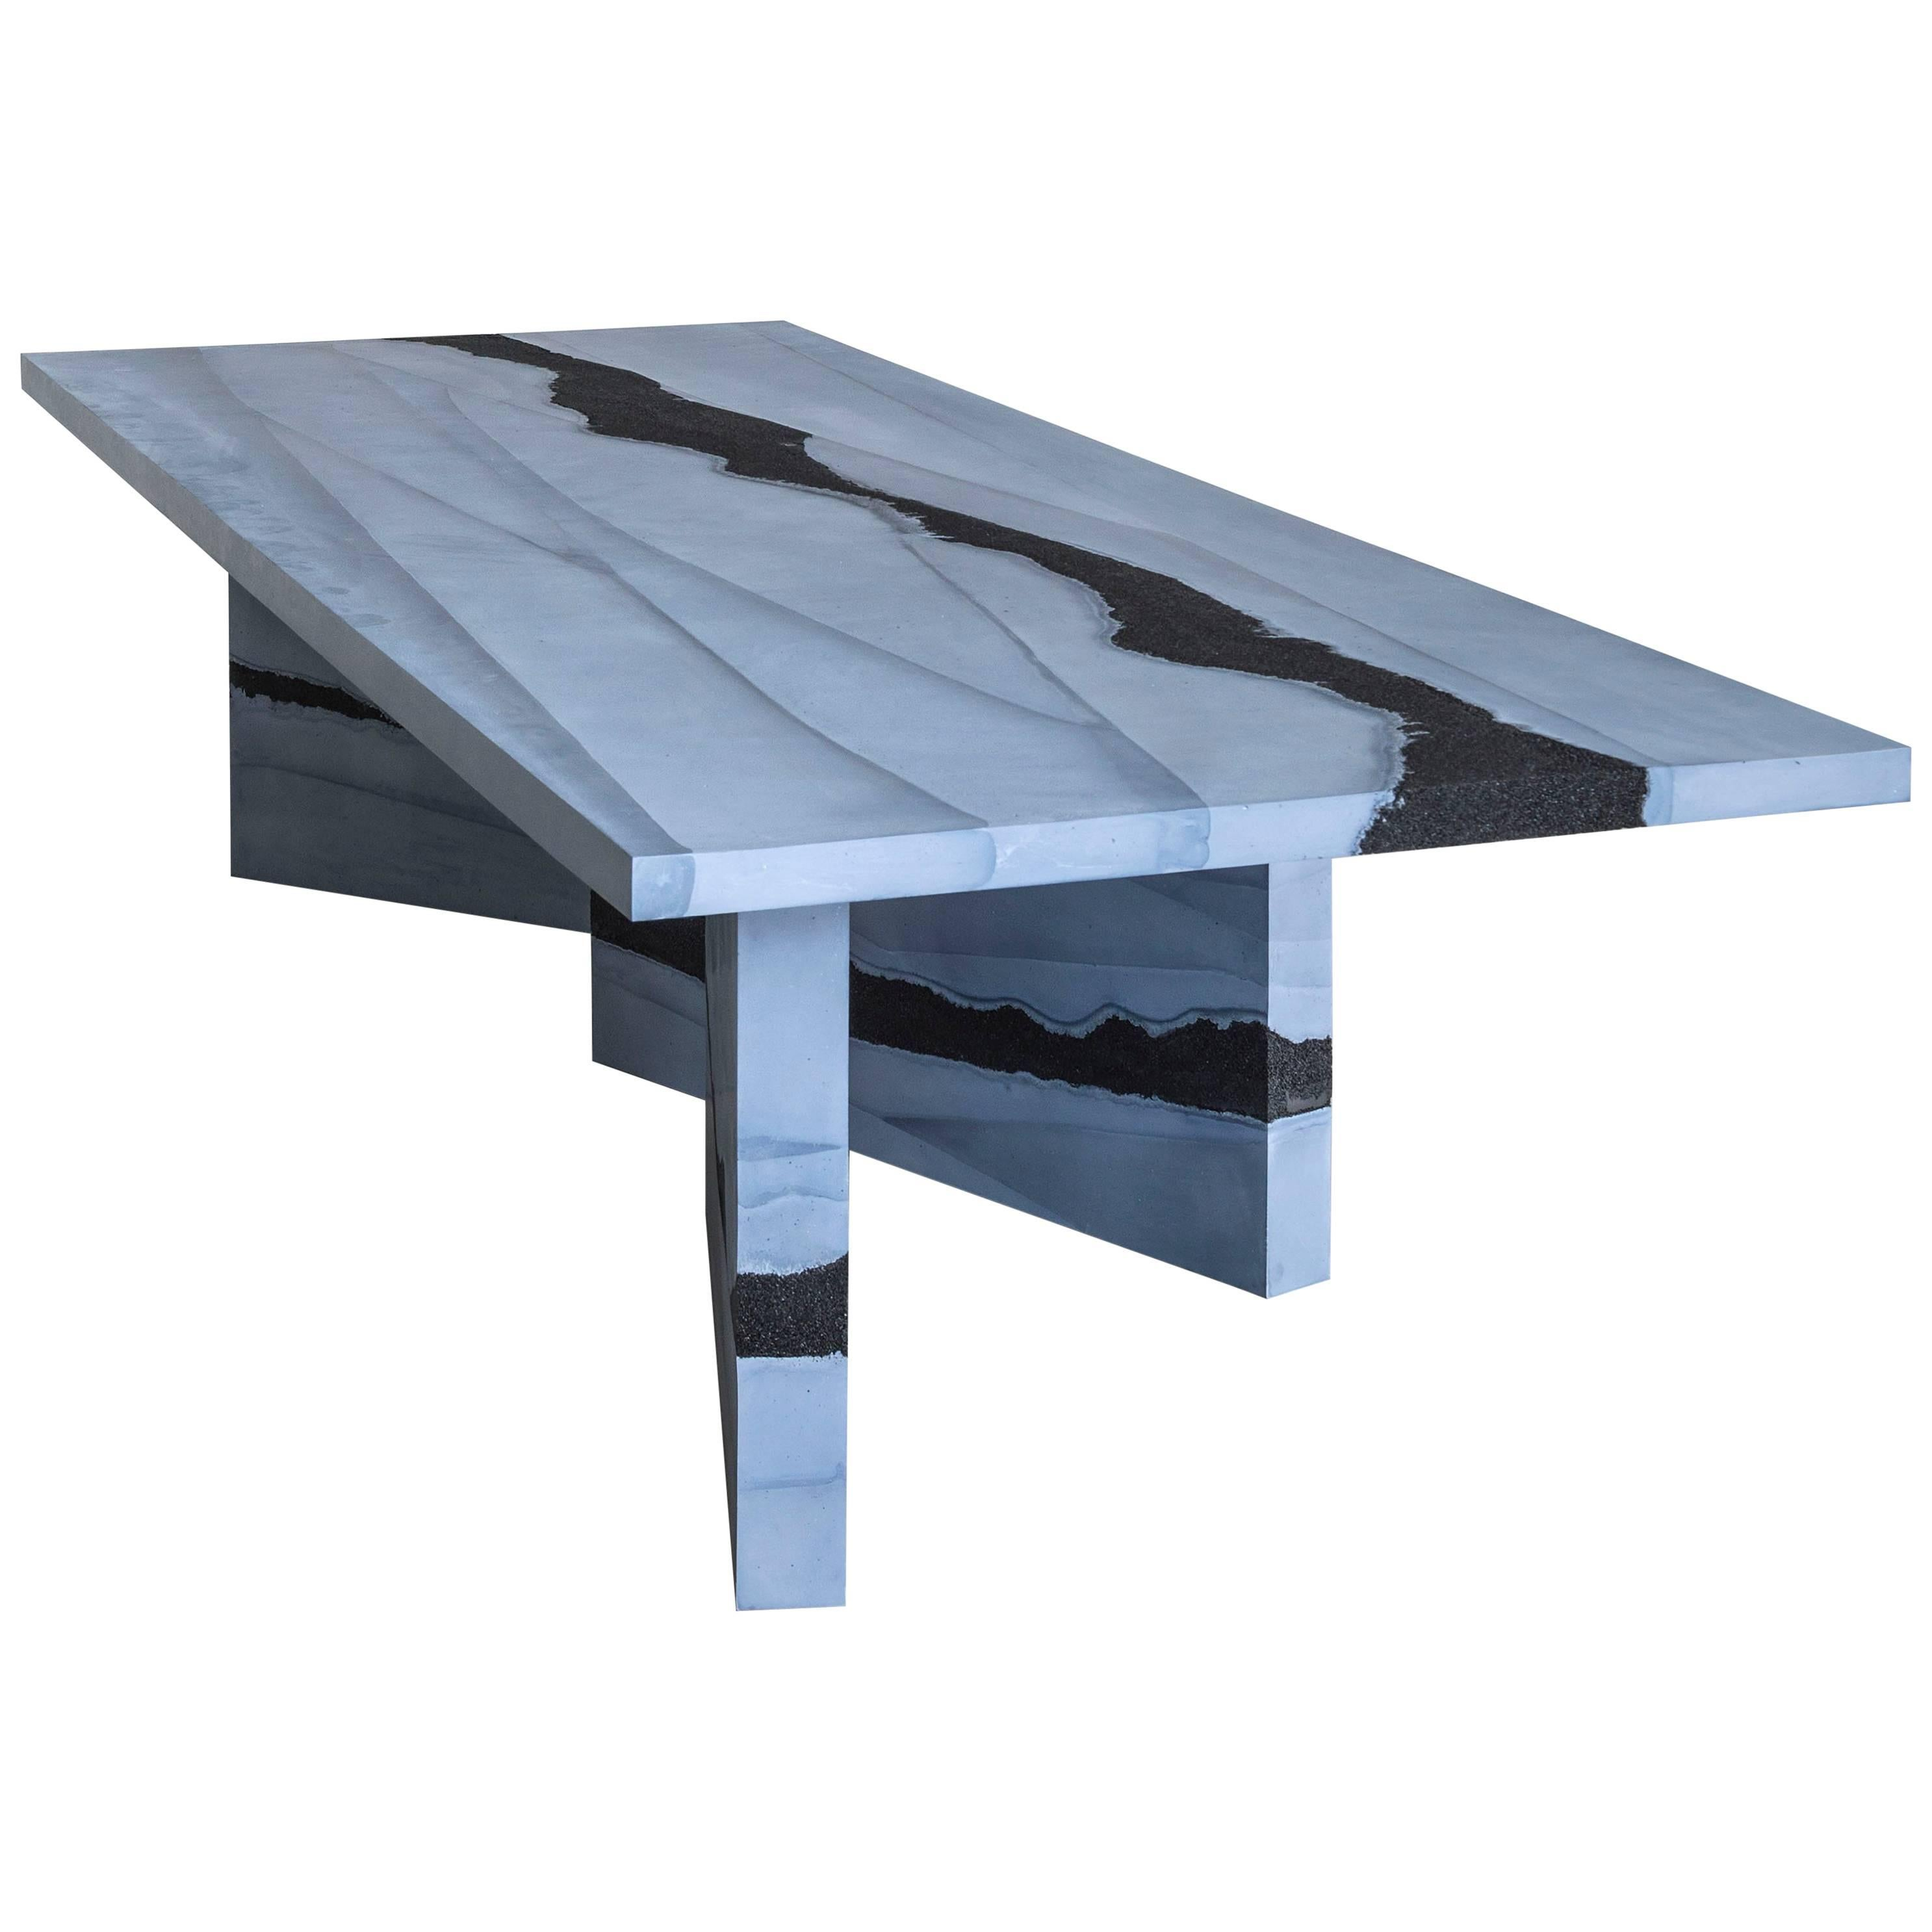 Dining Table by Martin Eisler, 1950s For Sale at 1stdibs